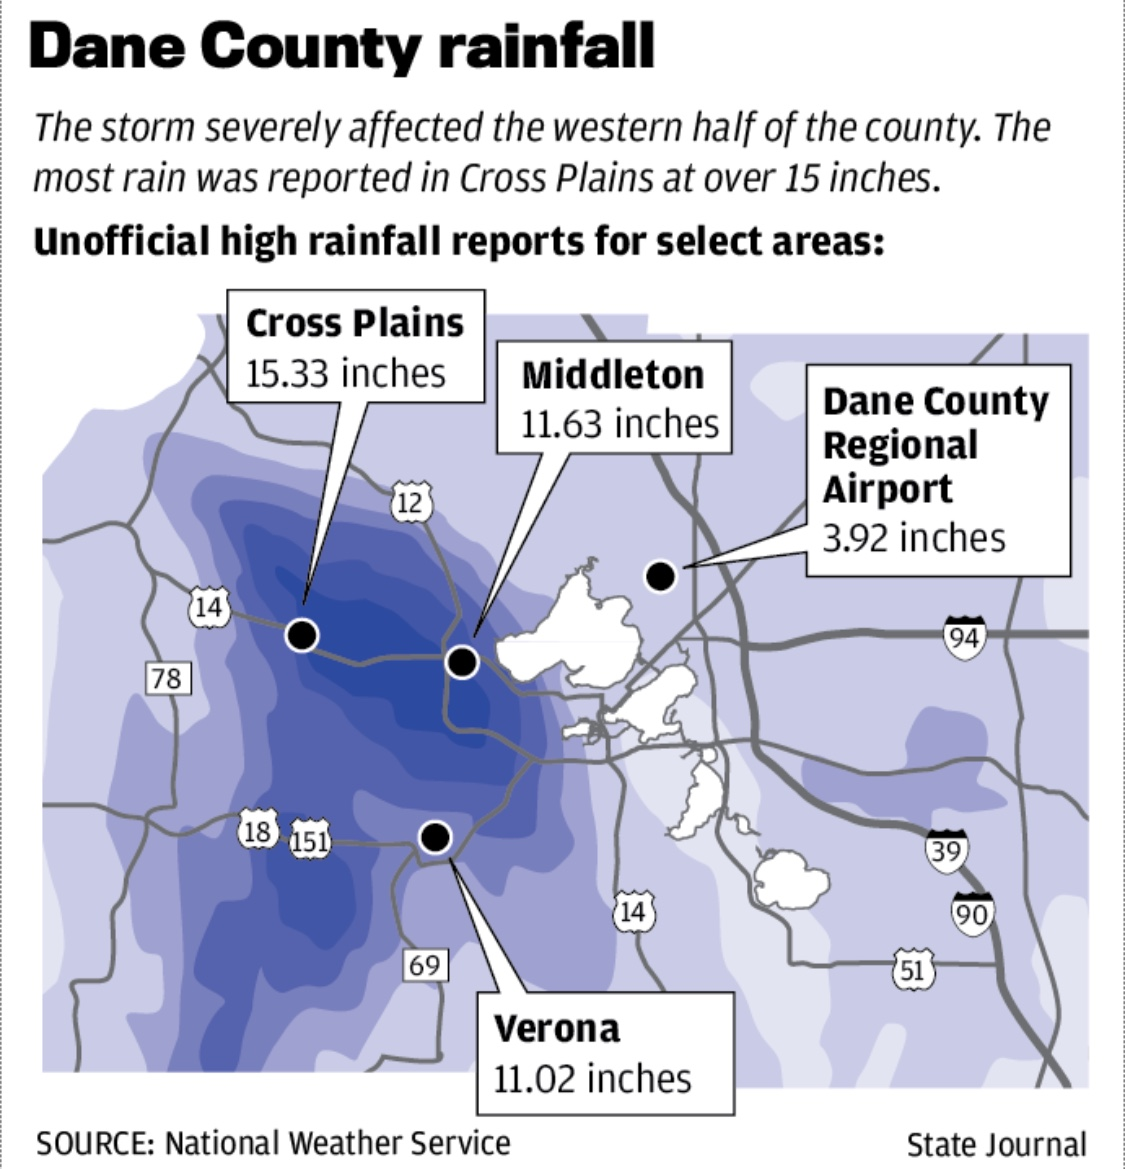 rainfall map found at damage widespread 1 dead after record rainfall causes flash flooding in dane county wisconsin state journal 8 22 2018